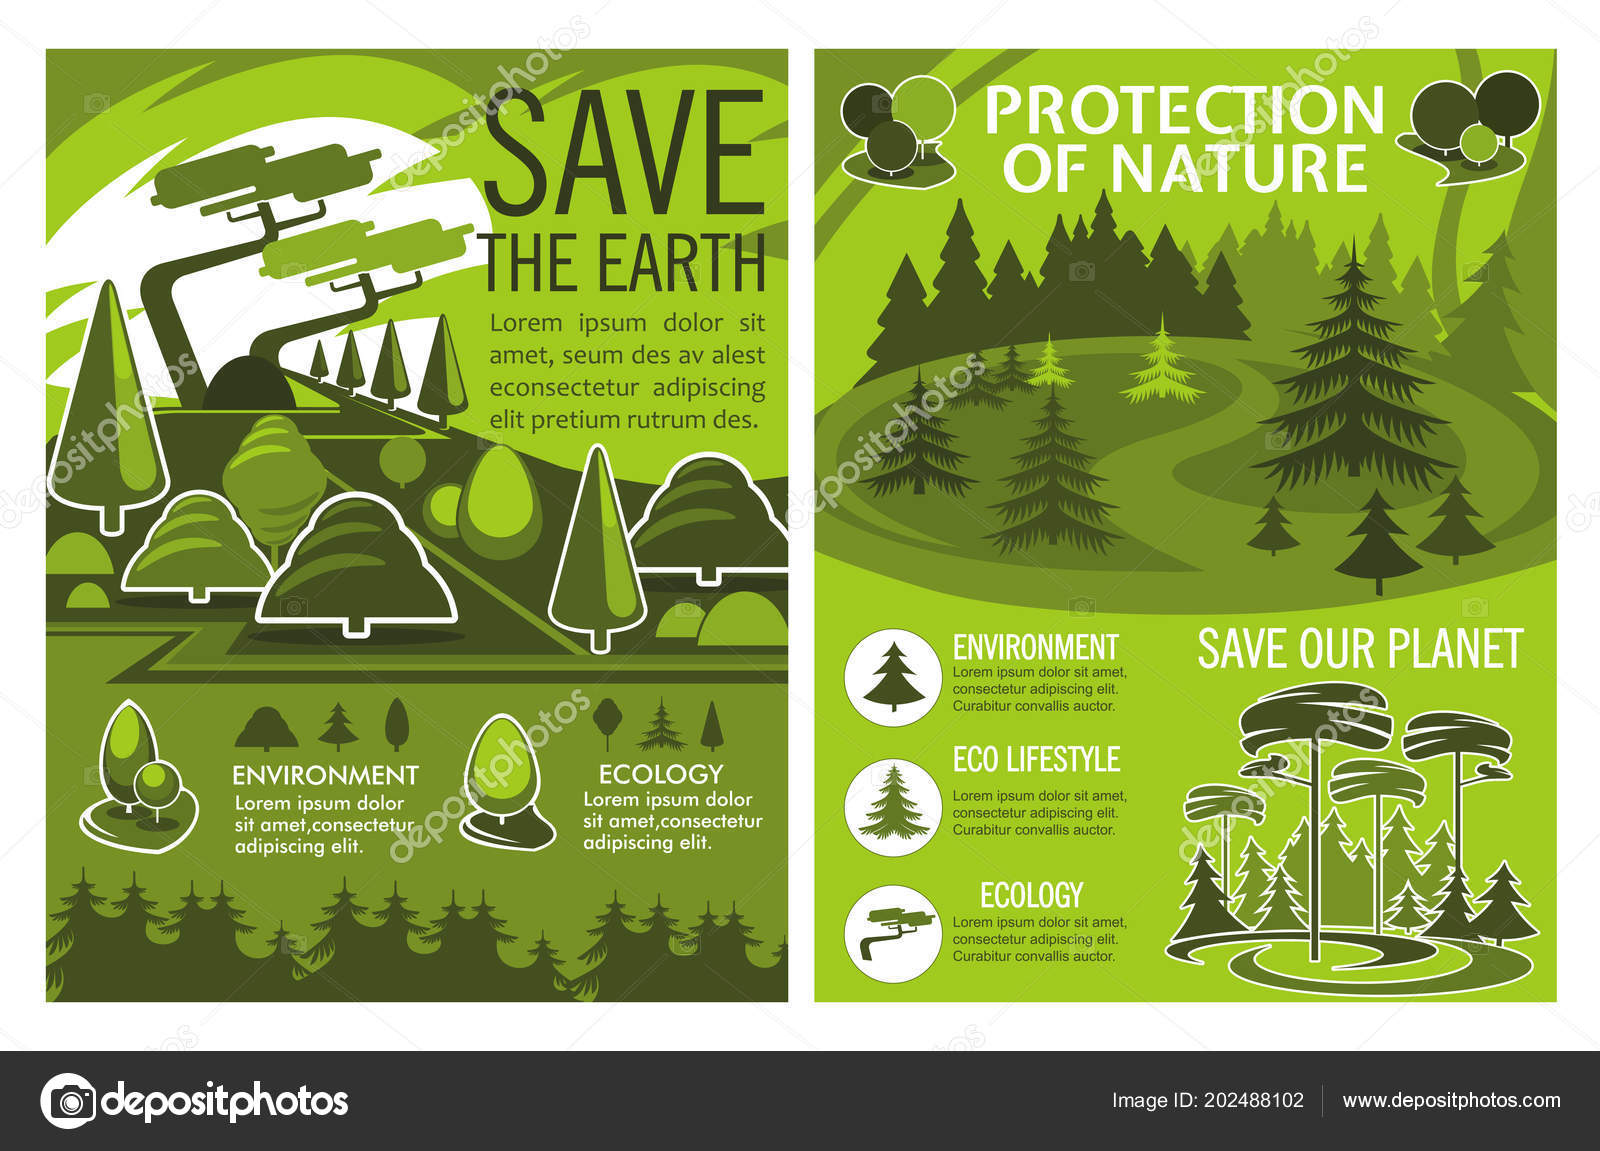 Wandposter Natur Save Earth Poster Of Eco Or Environment Protection Stock Vector